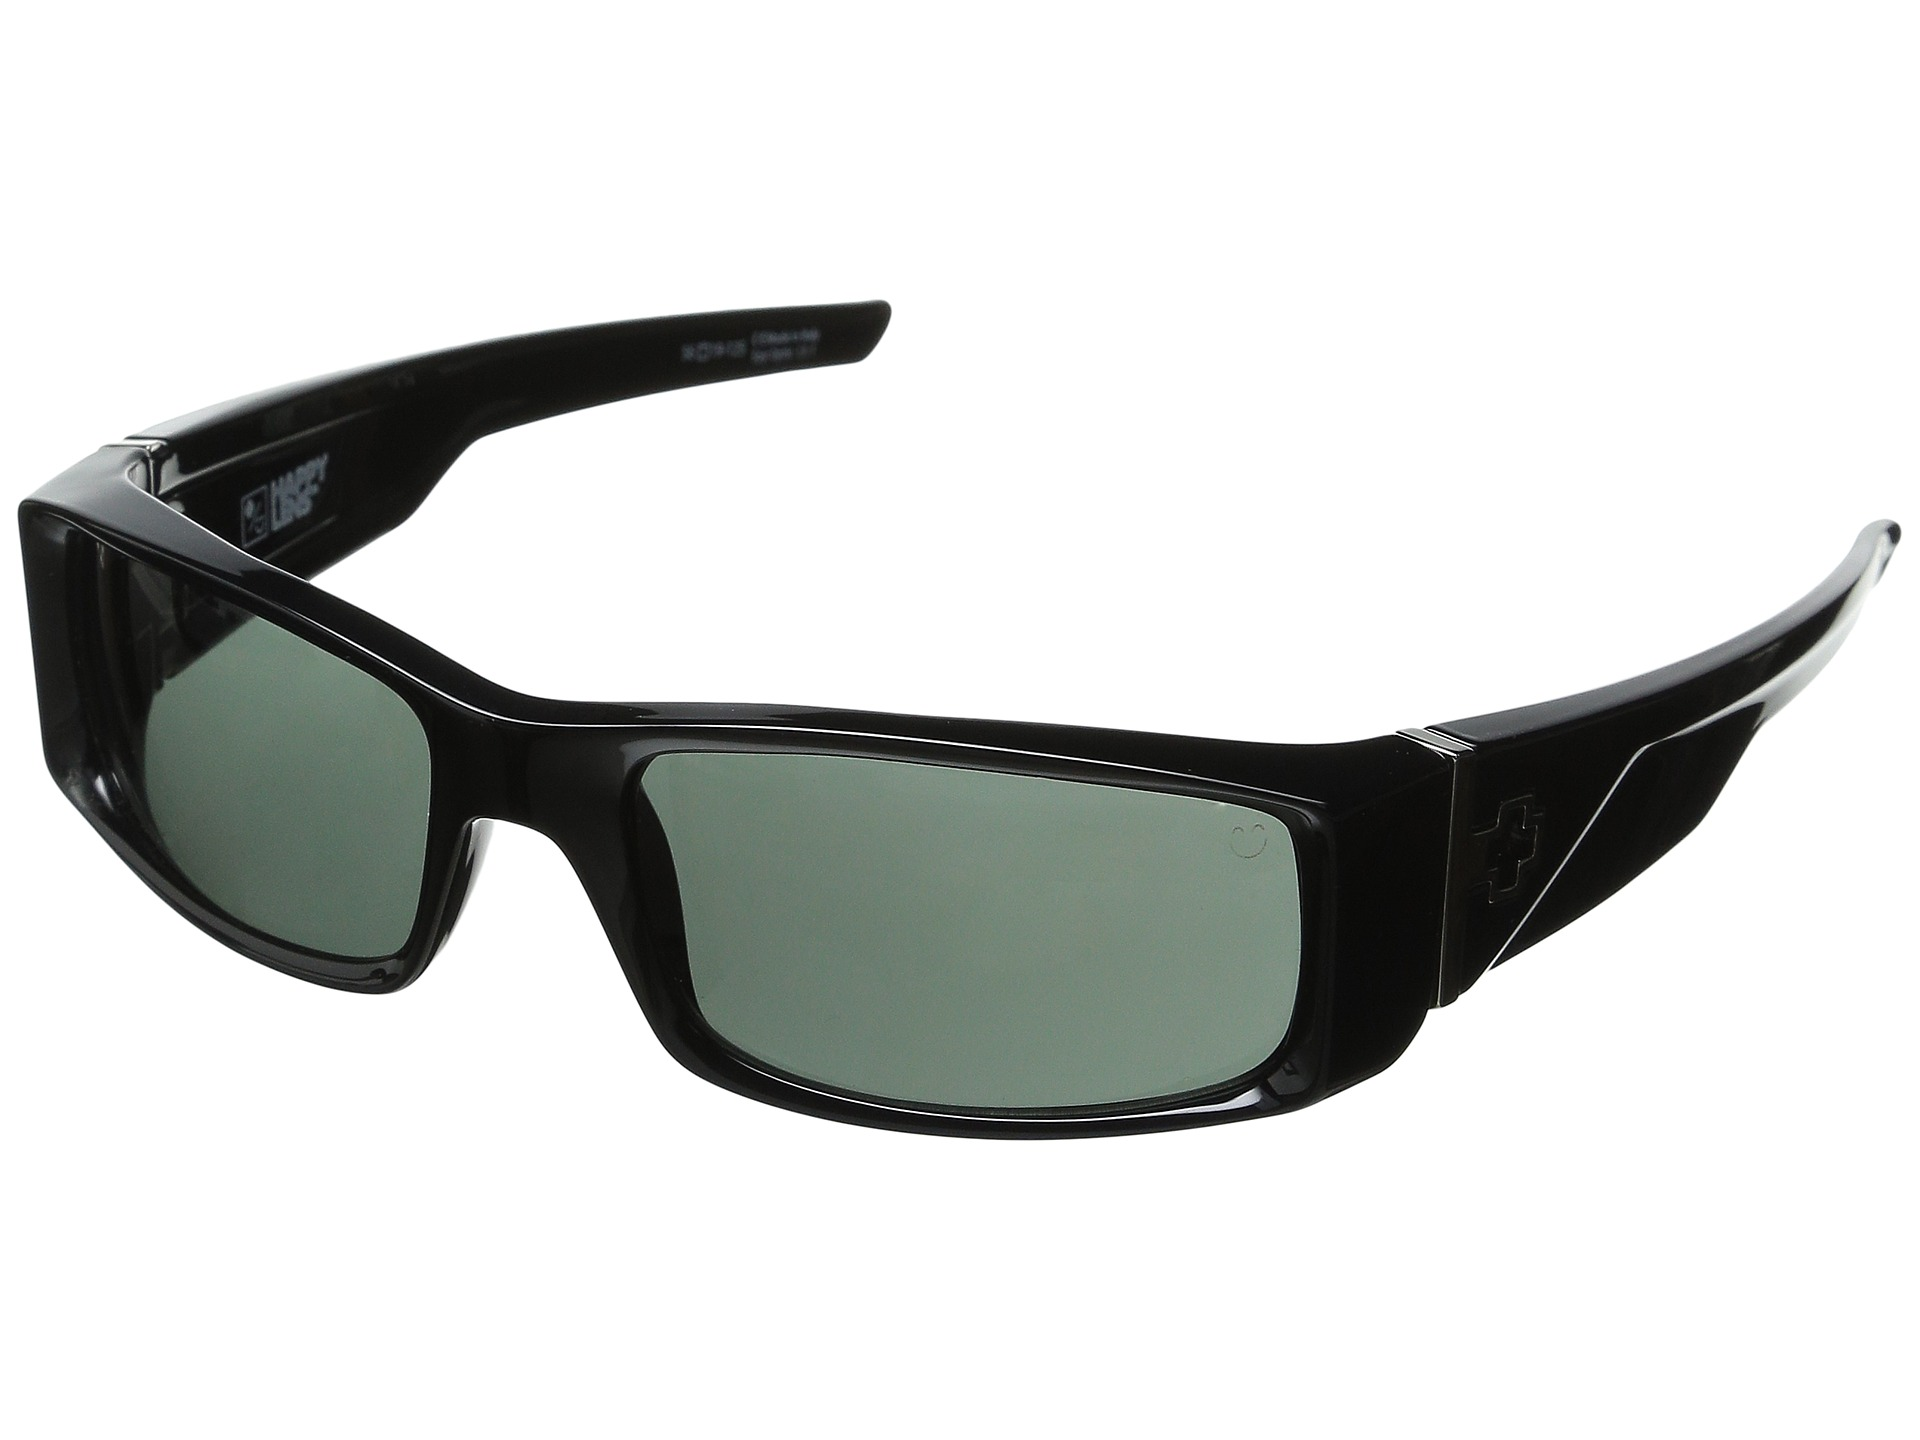 5715bc1453 How Much Are Hielo Sunglasses - Bitterroot Public Library